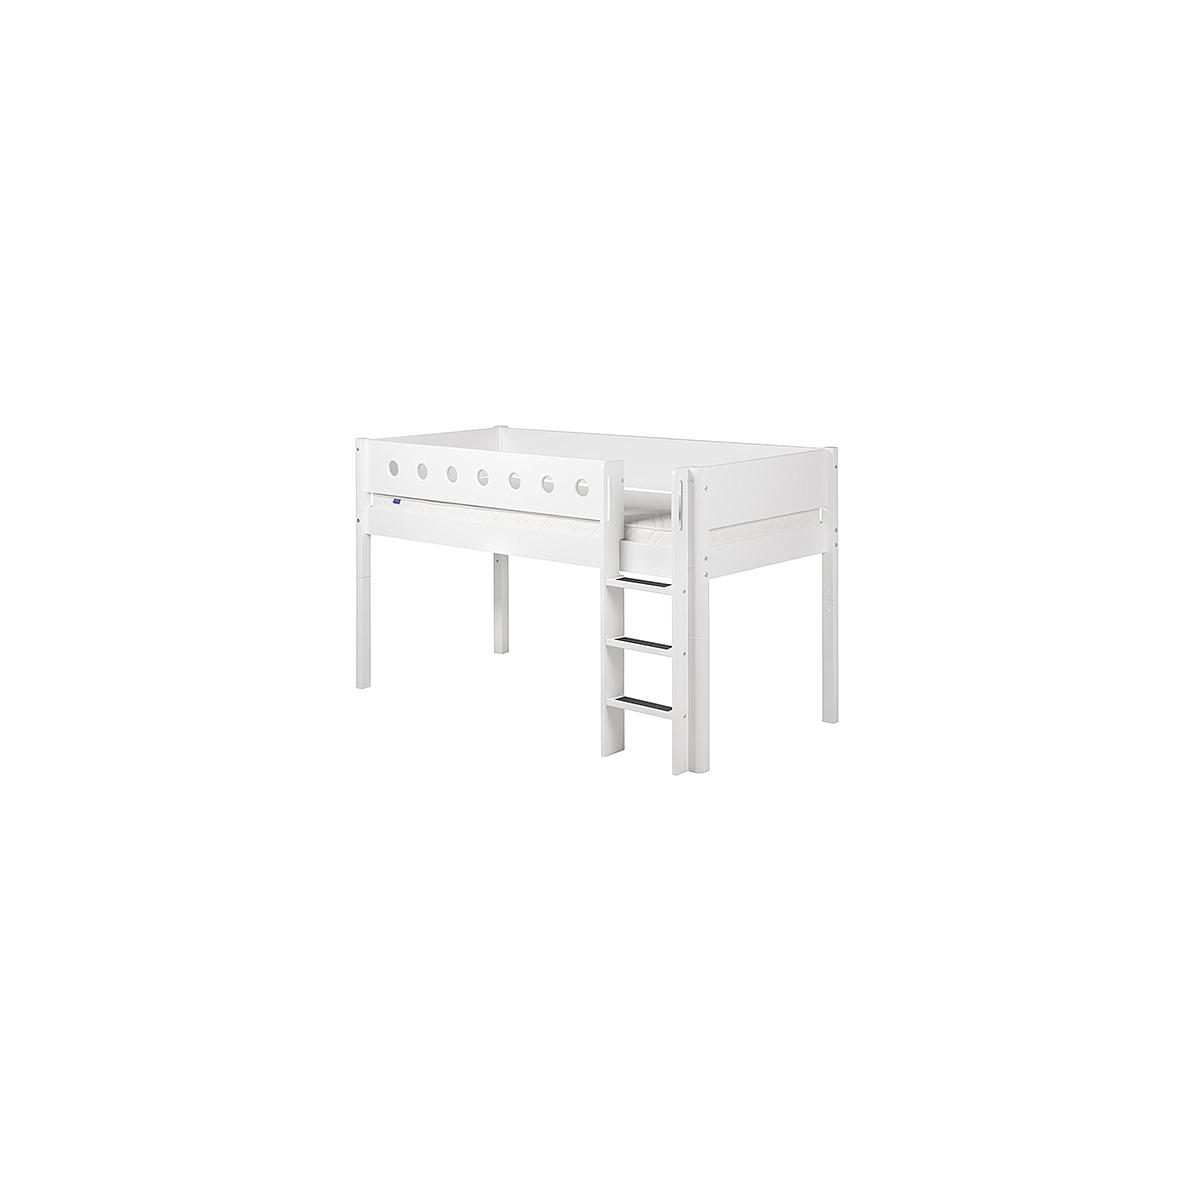 Cama media alta 90x200 WHITE Flexa escalera recta barrera y patas blancas